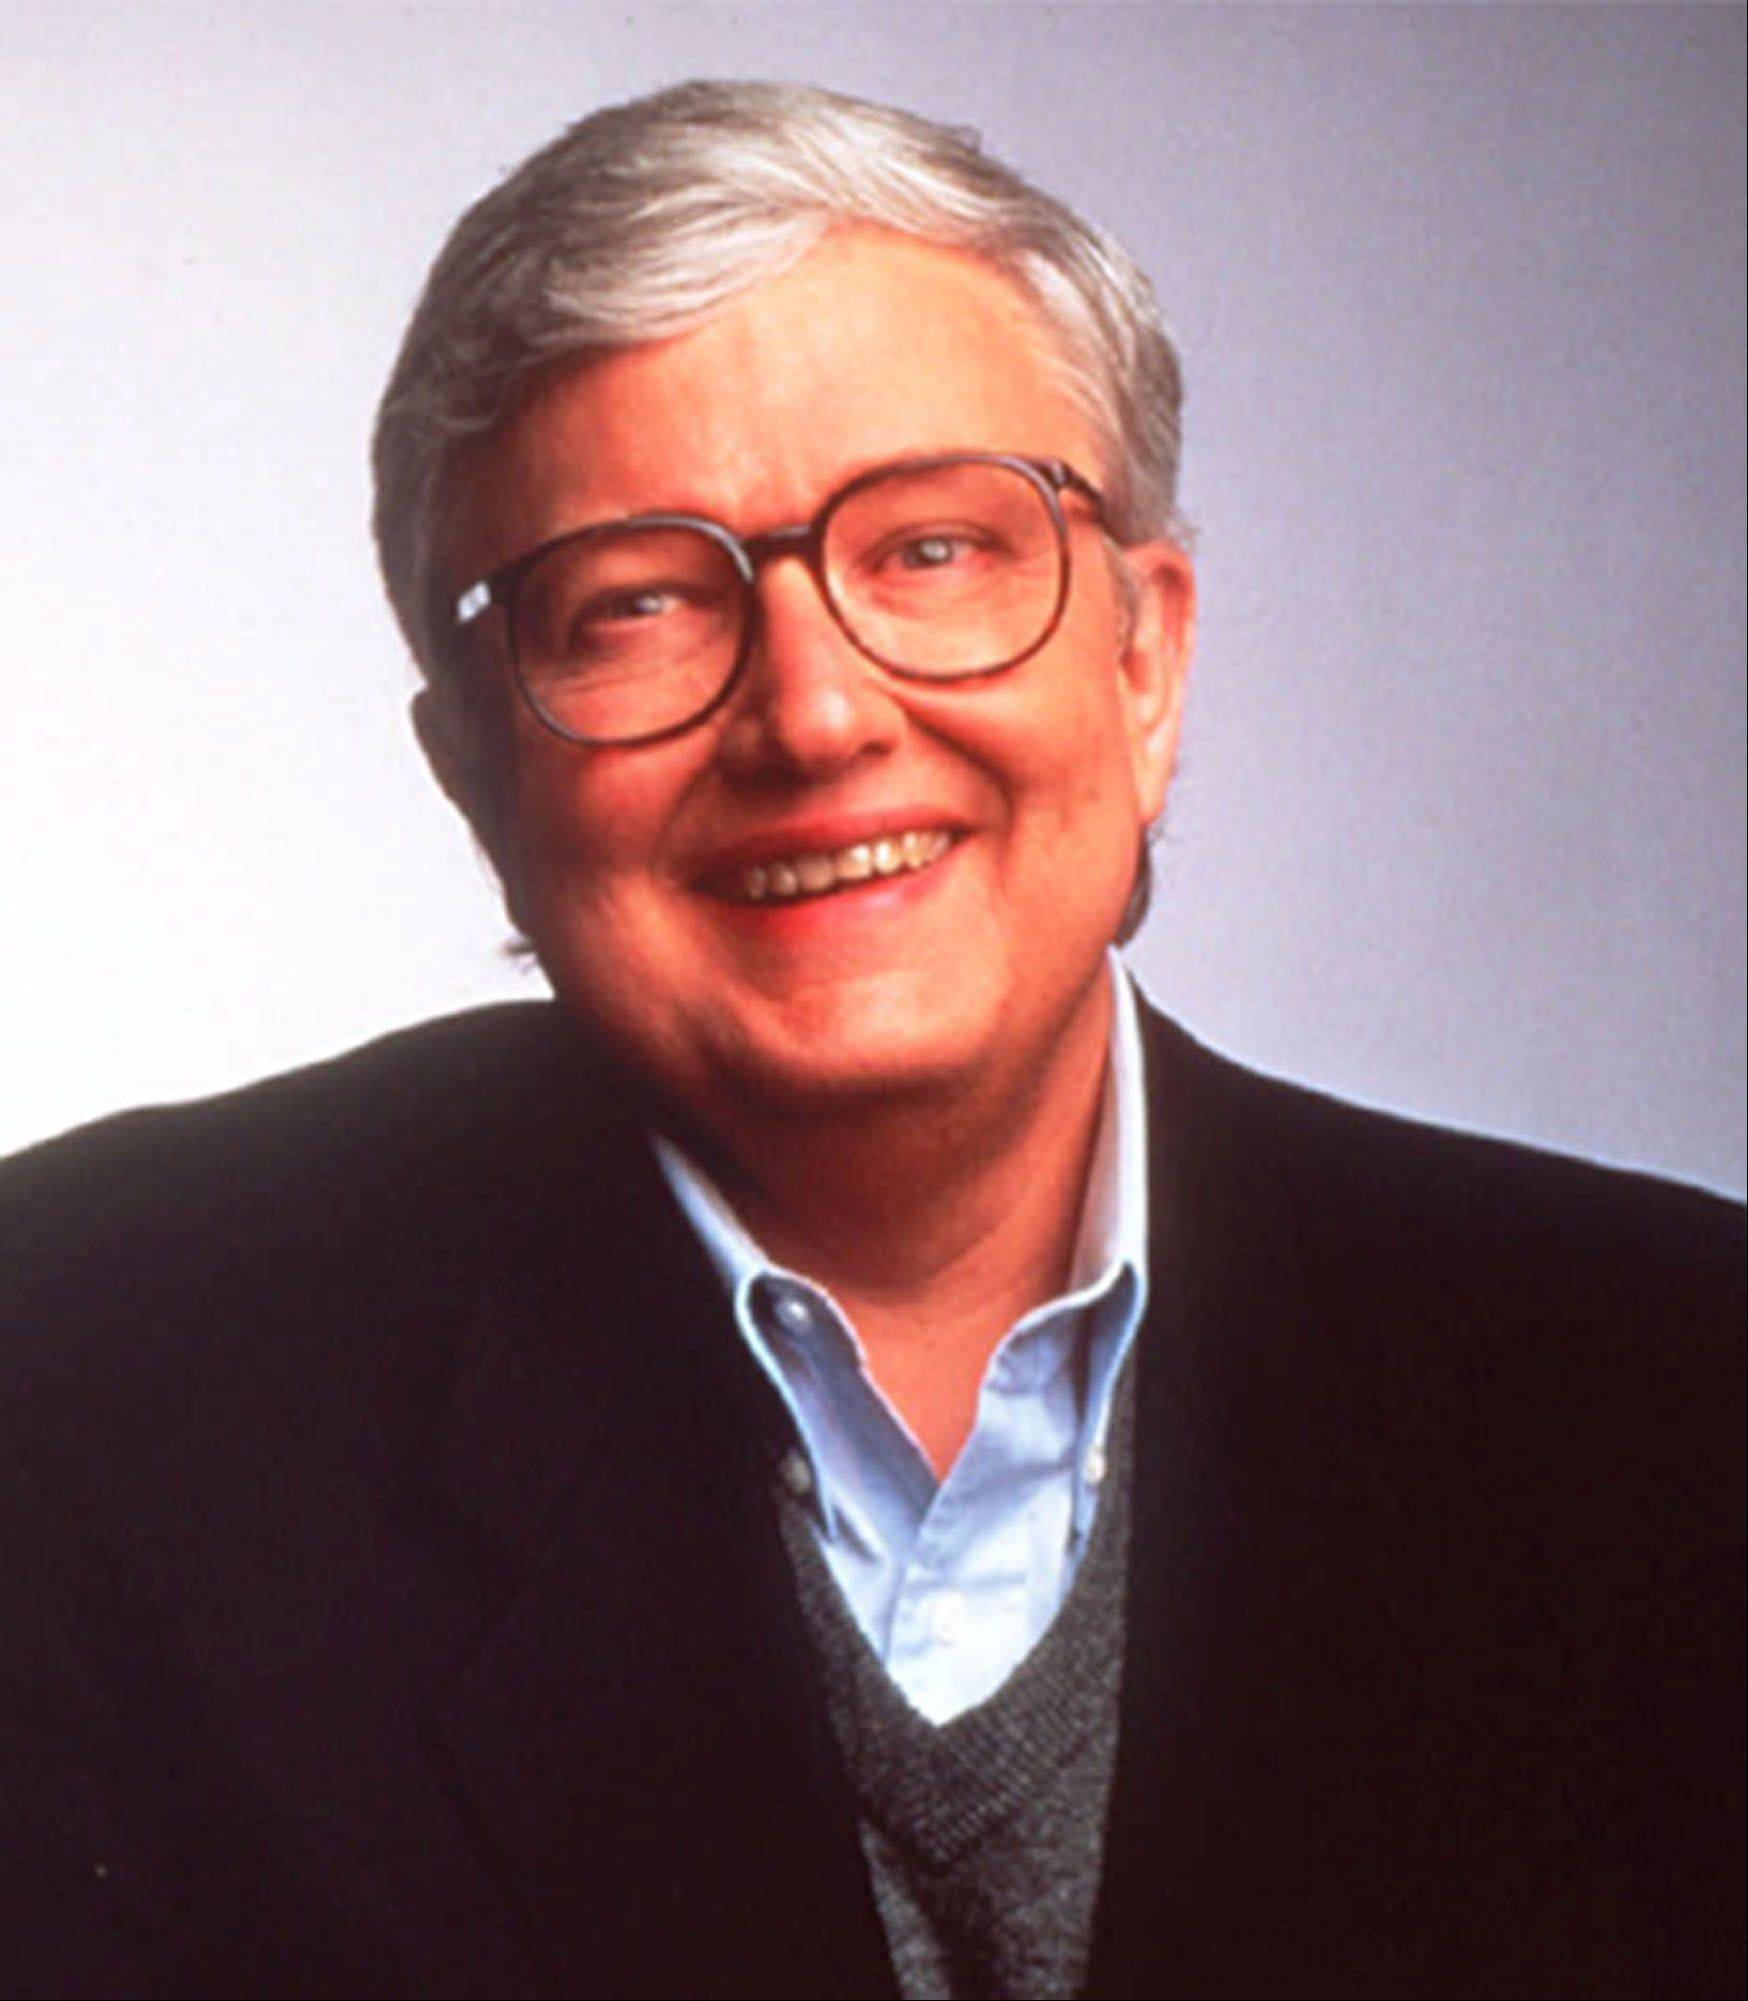 Film critic Roger Ebert is seen in this 1994 file photo. Ebert,in town for his annual Overlooked Film Festival, slipped on a newly waxed floor and suffered two hairline fractures in his left shoulder Saturday, April 27, 2002, in the student union at the University of Illinois.